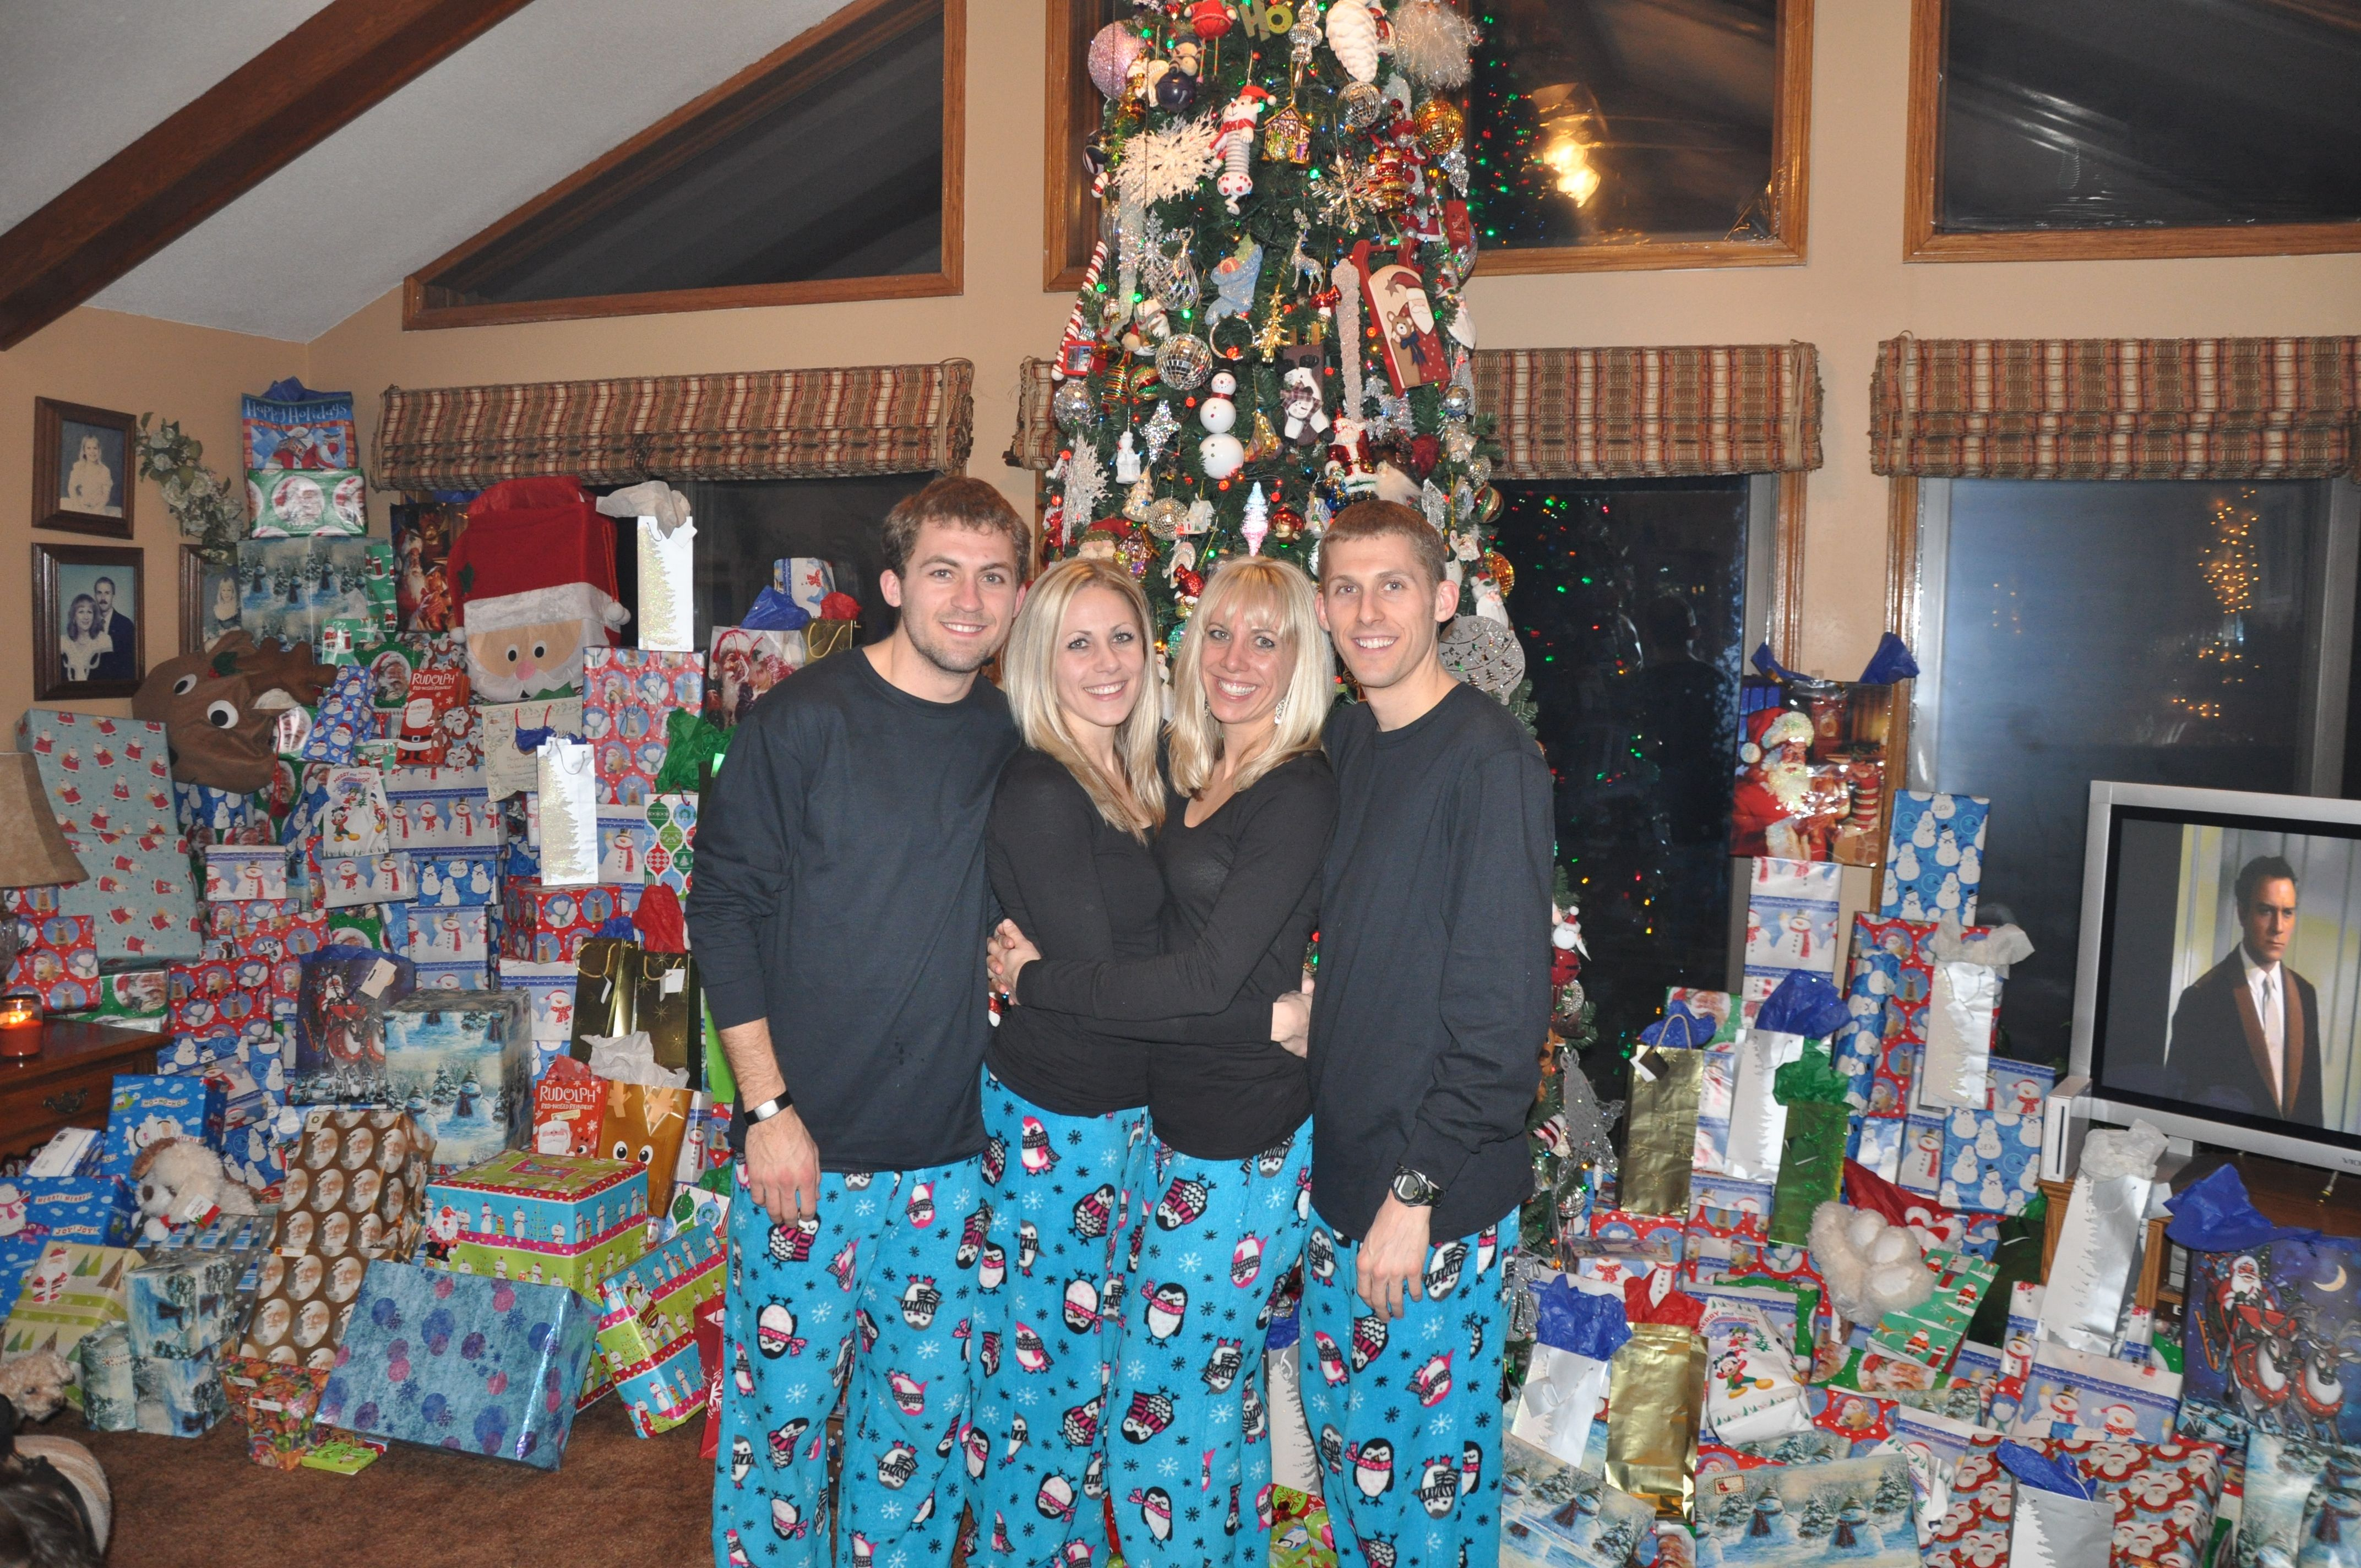 siblings in matching pajamas